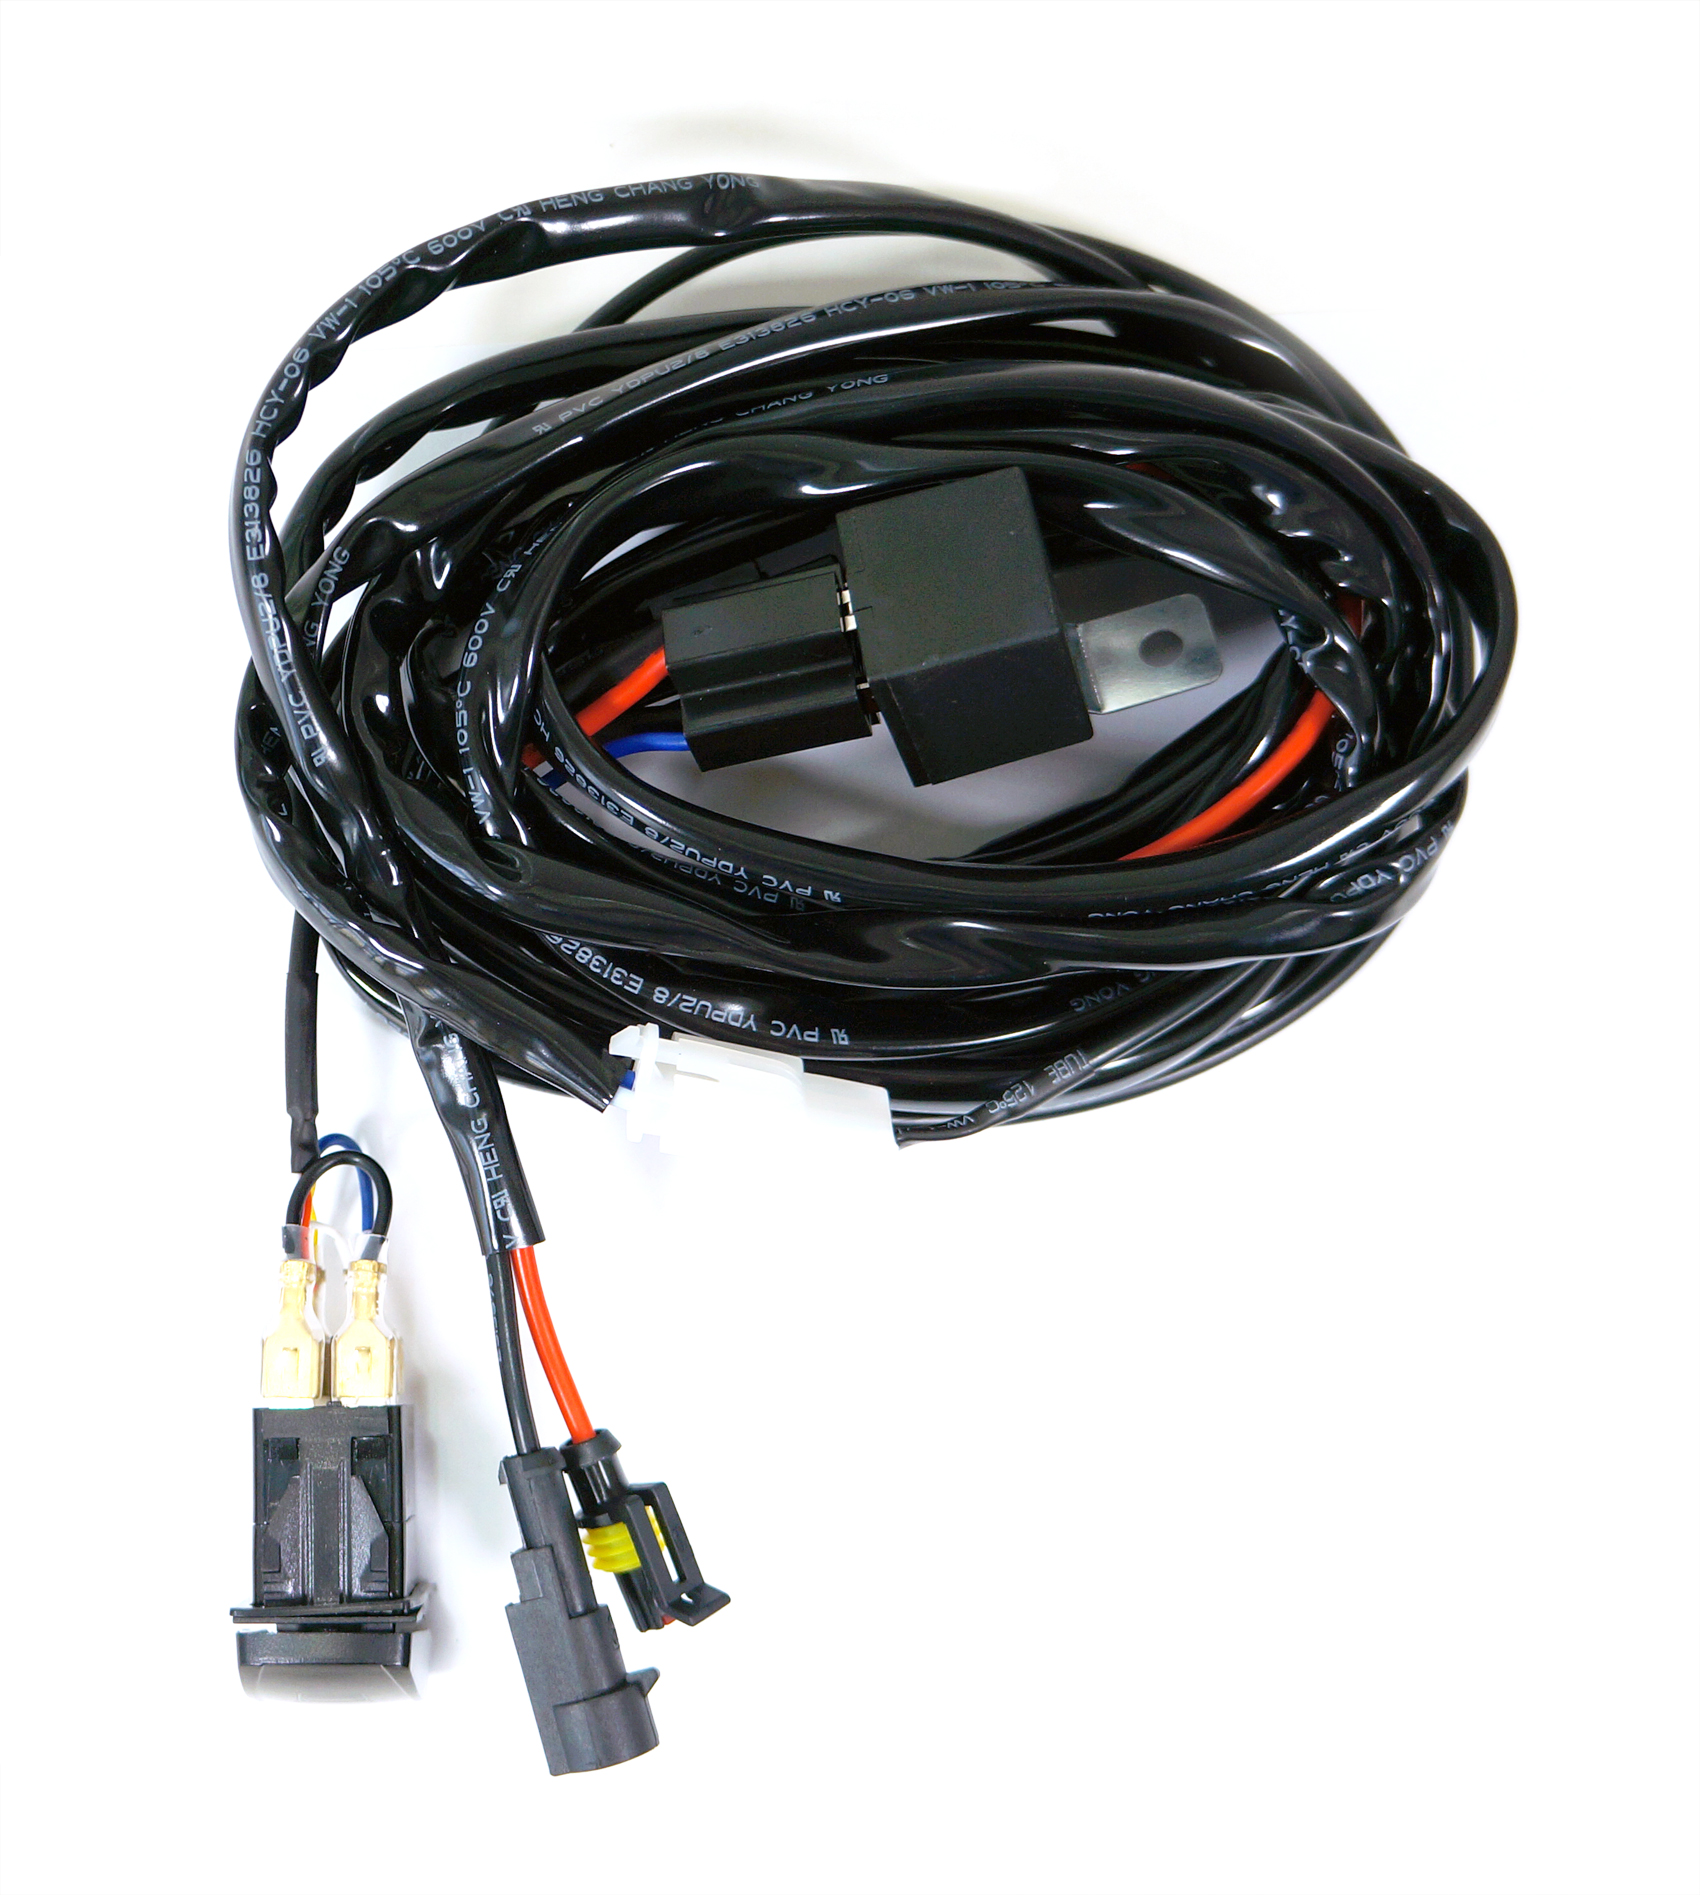 wiring harness kit wiring diagram and hernes kawell 2 leg wiring harness include switch kit support 120w led